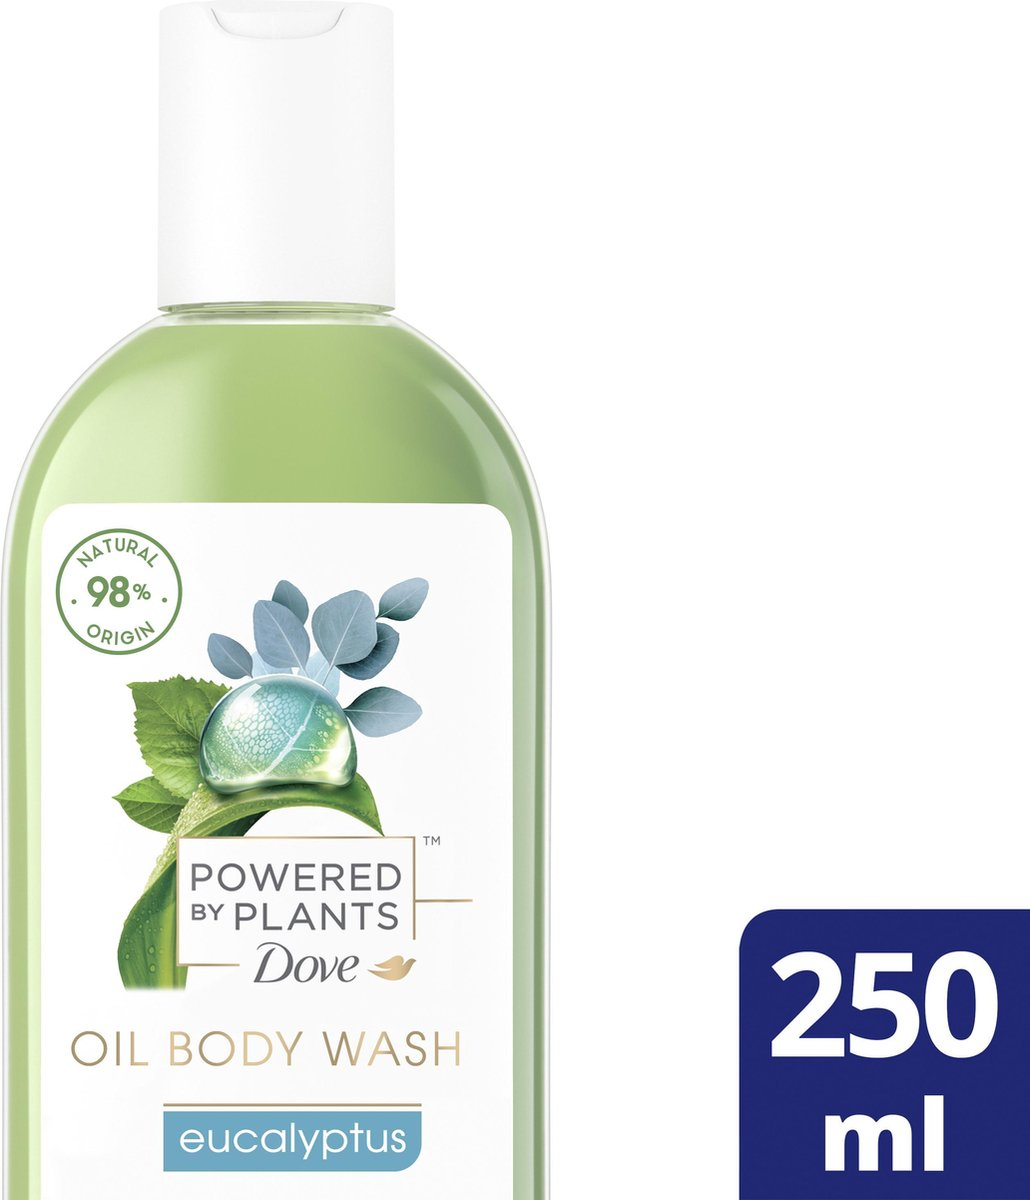 Dove Powered by Plants Douchegel Oil Body Wash Eucalyptus 250 ml